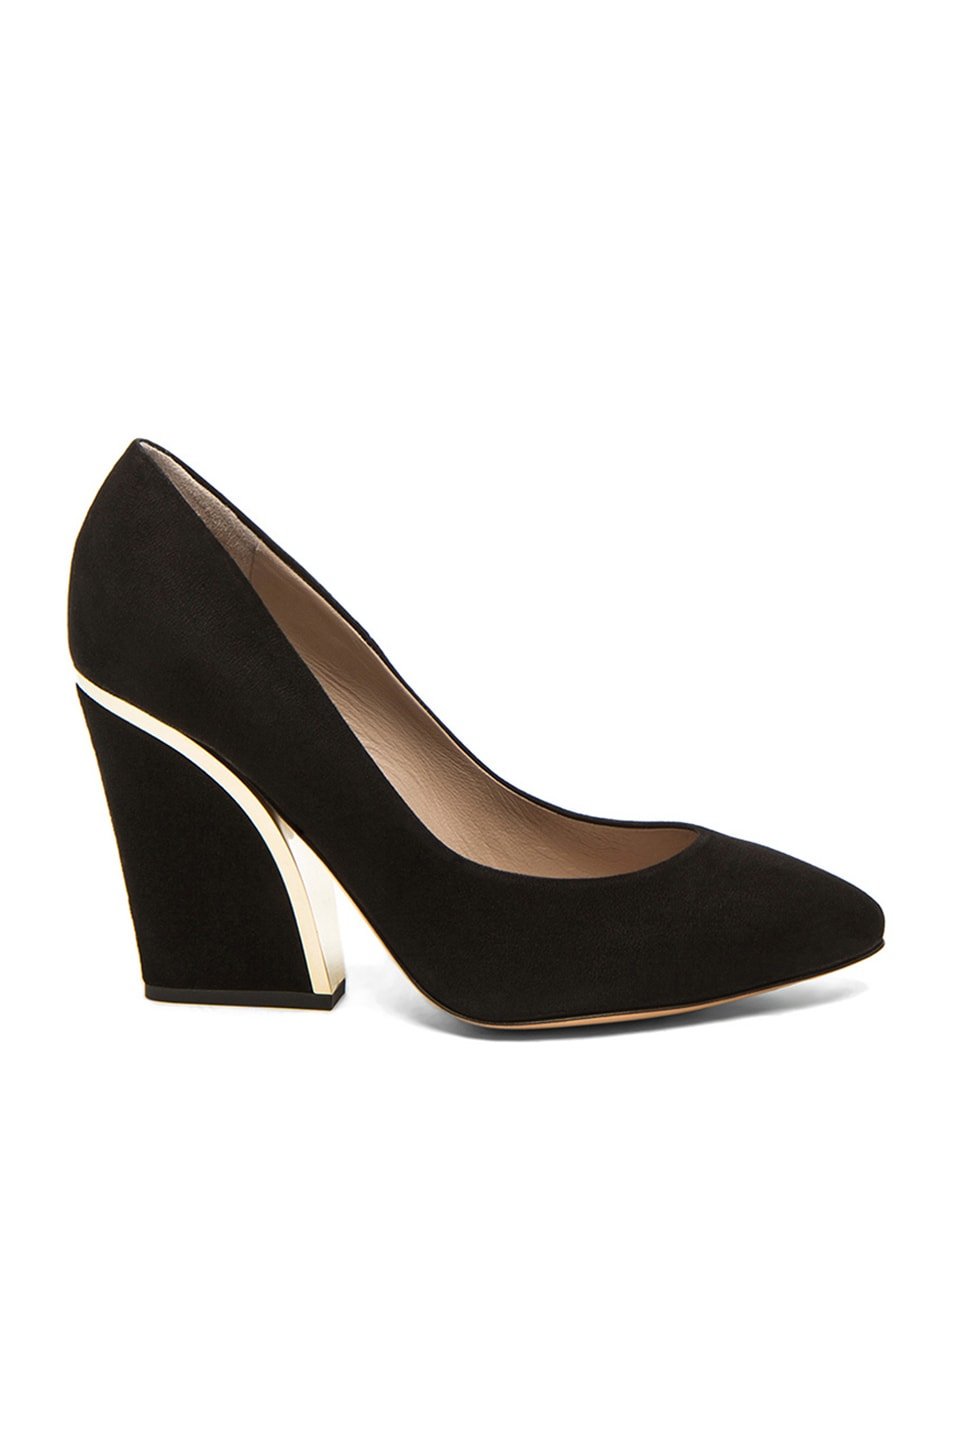 7c041f383084 Image 1 of Chloe Suede Gold Trim Pumps in Black